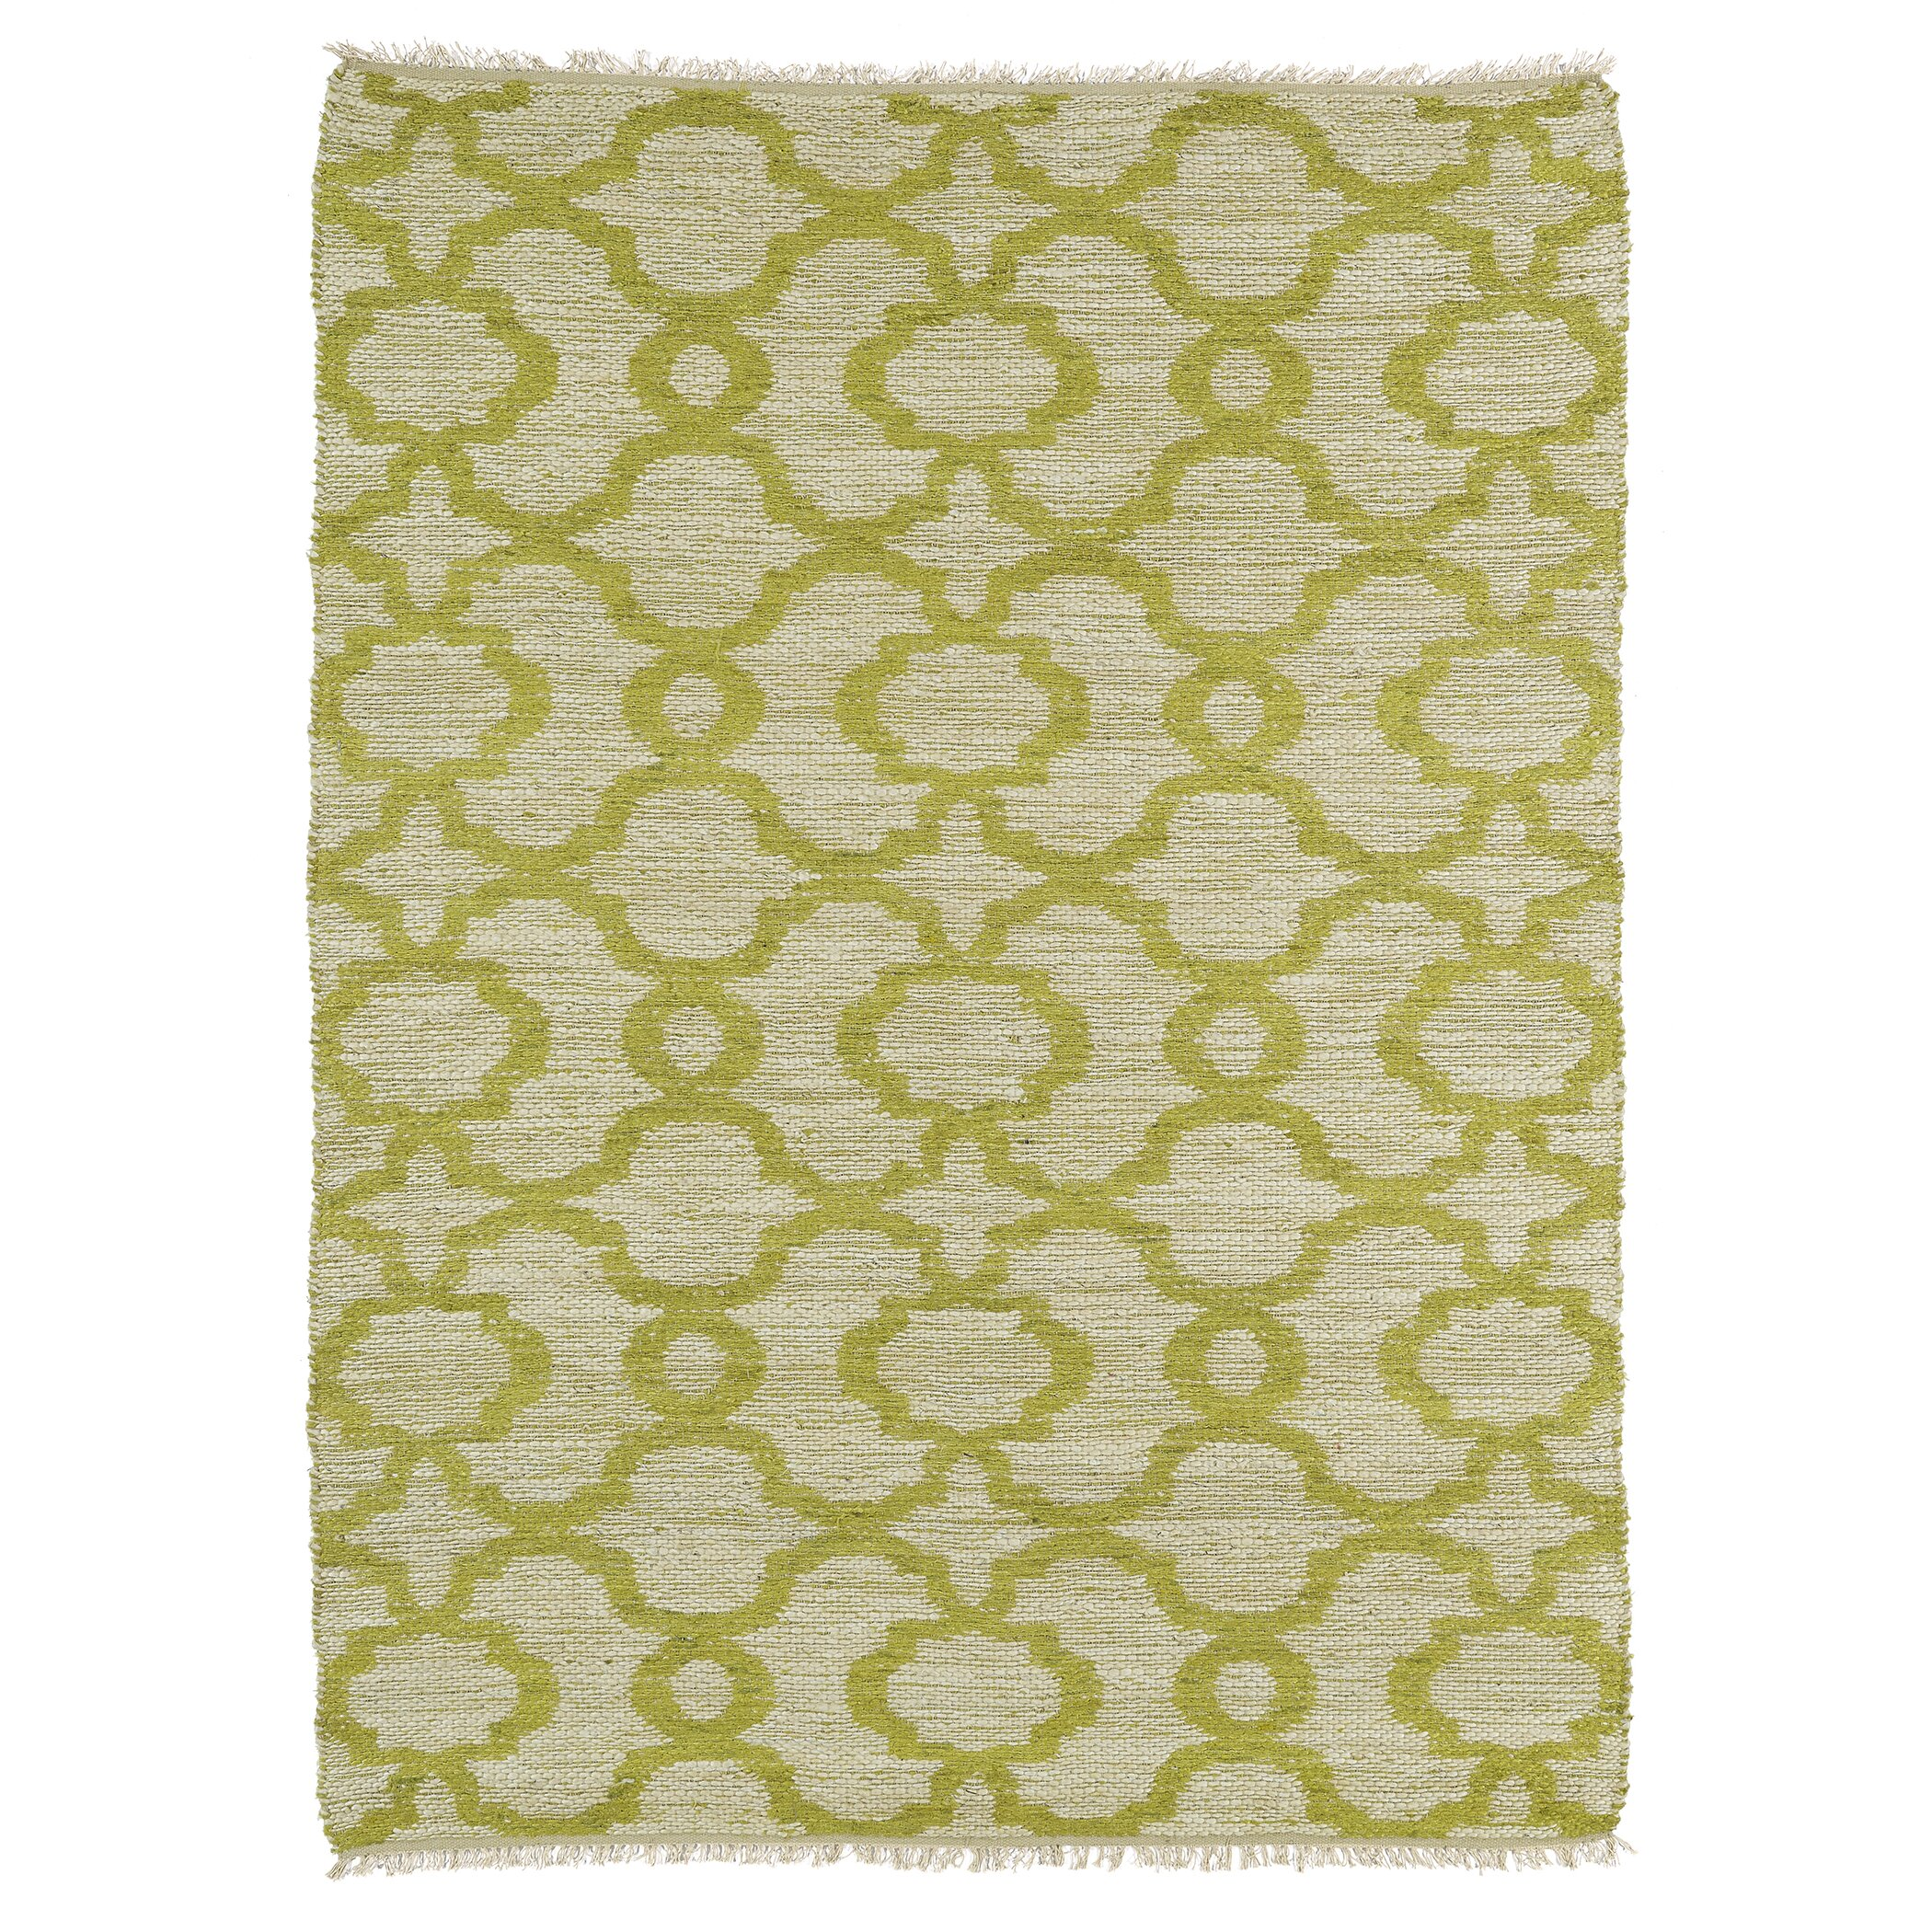 Lime Green Rugs For Kitchen: Kenwood Lime Green Area Rug